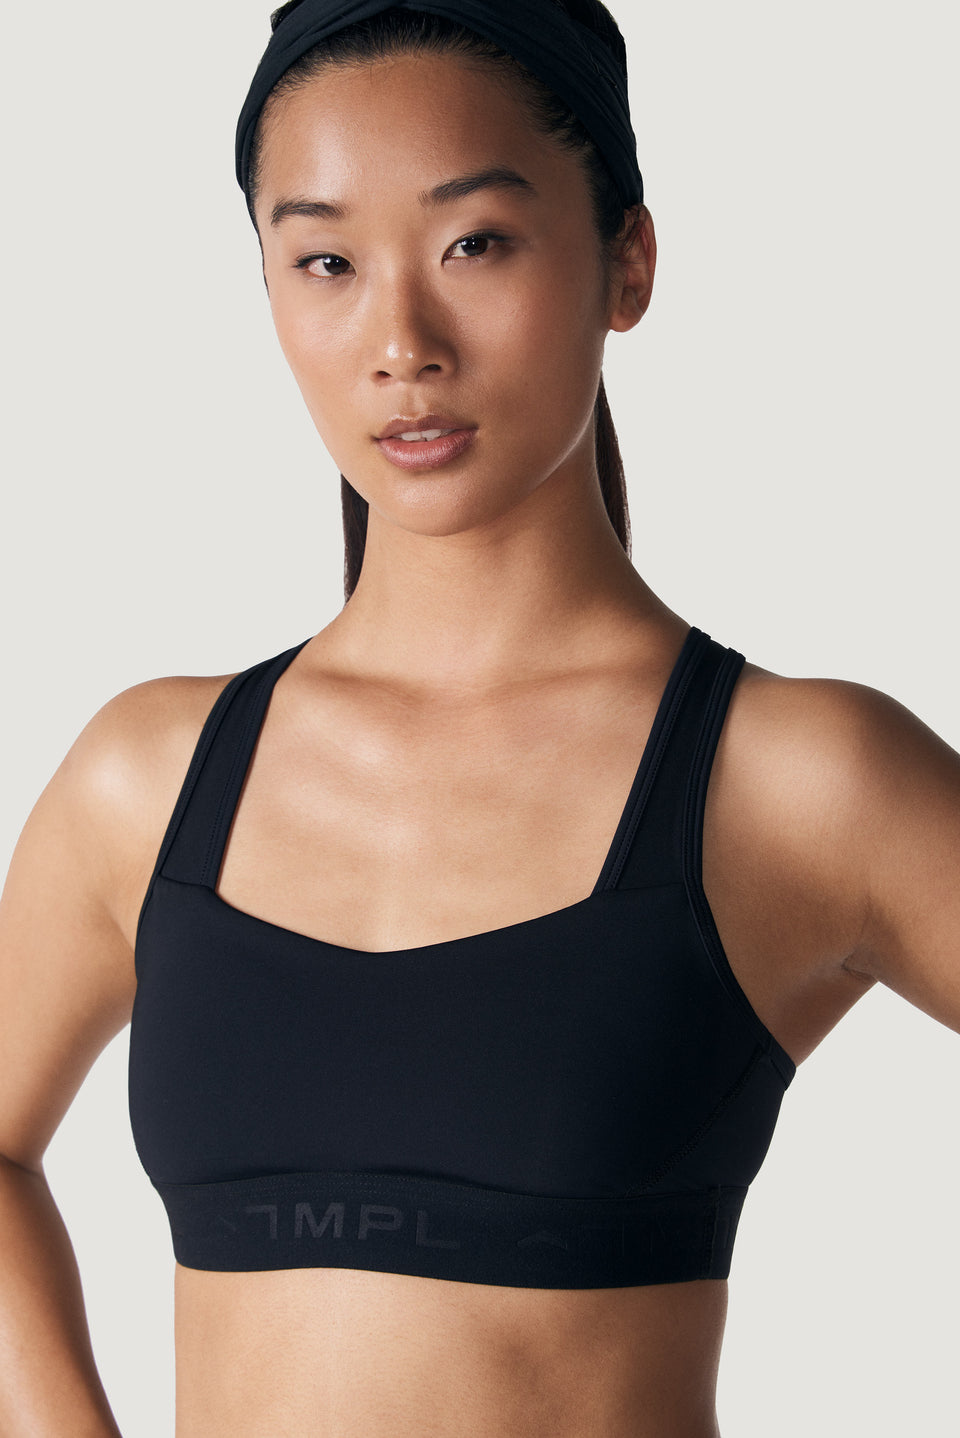 TMPL Women's Awoke High Impact Sports Bra